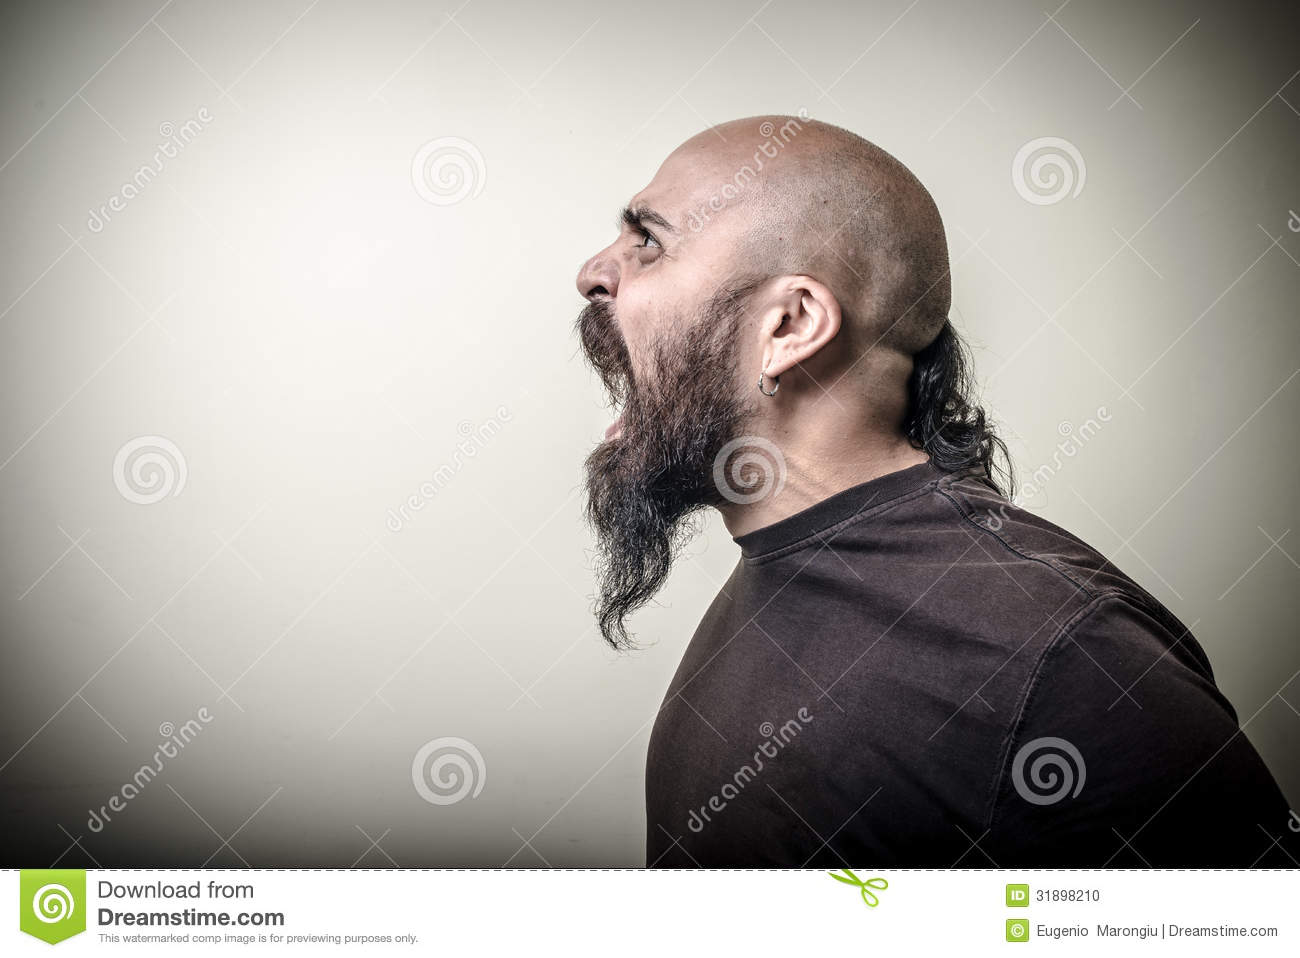 Profile Screaming Angry Bearded Man Stock Photo - Image ...